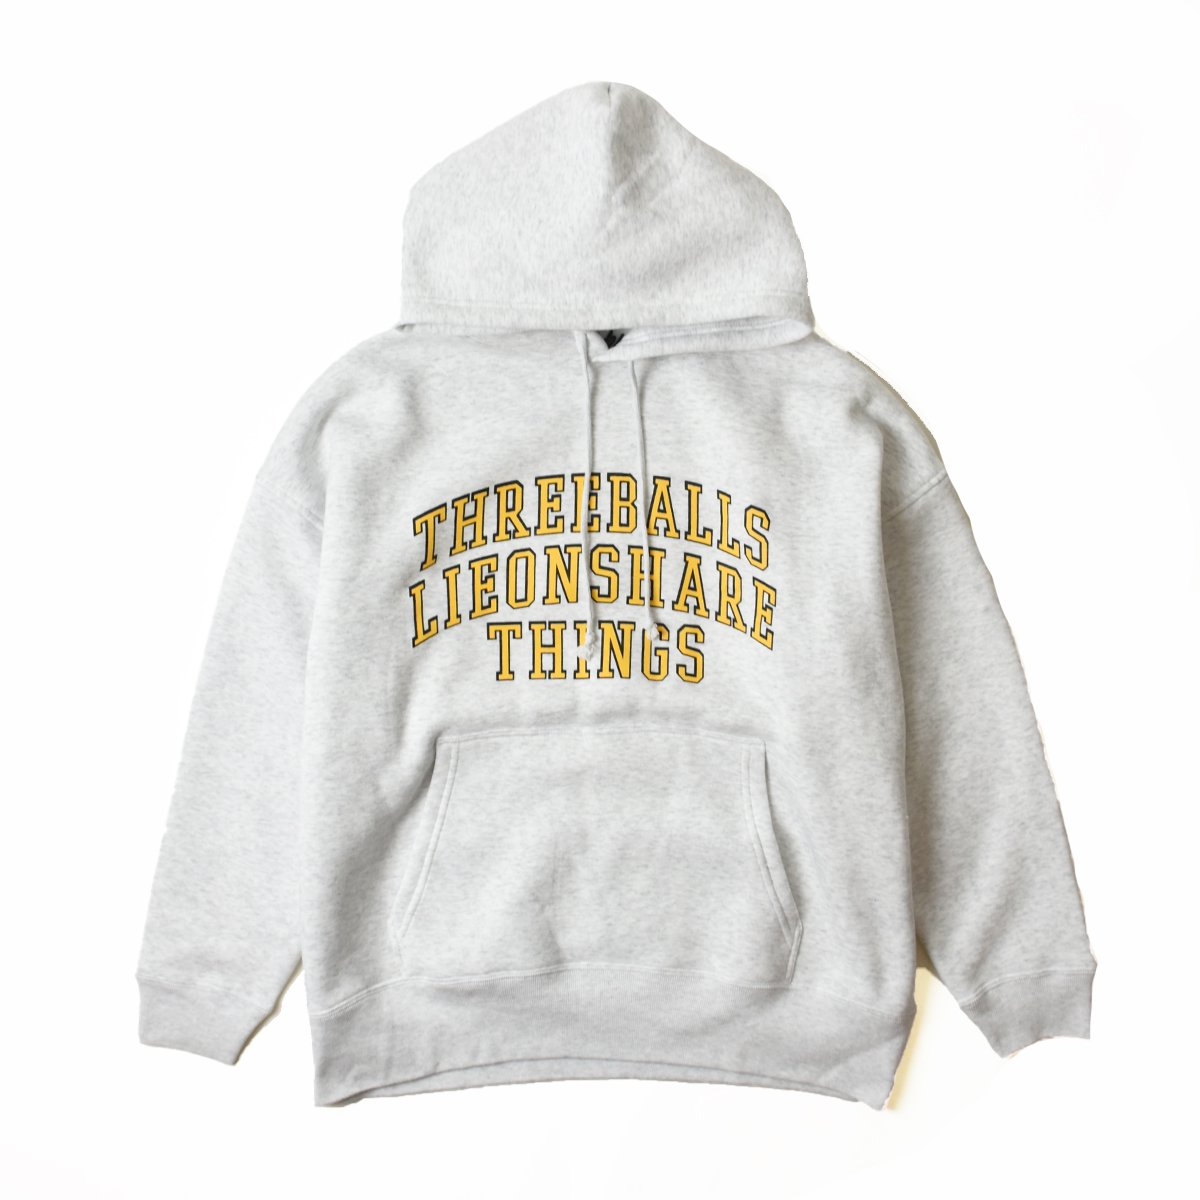 <img class='new_mark_img1' src='https://img.shop-pro.jp/img/new/icons8.gif' style='border:none;display:inline;margin:0px;padding:0px;width:auto;' />【LIEON SHARE】Three Balls Hoodie (Silver Gray)                           </a>             <span class=